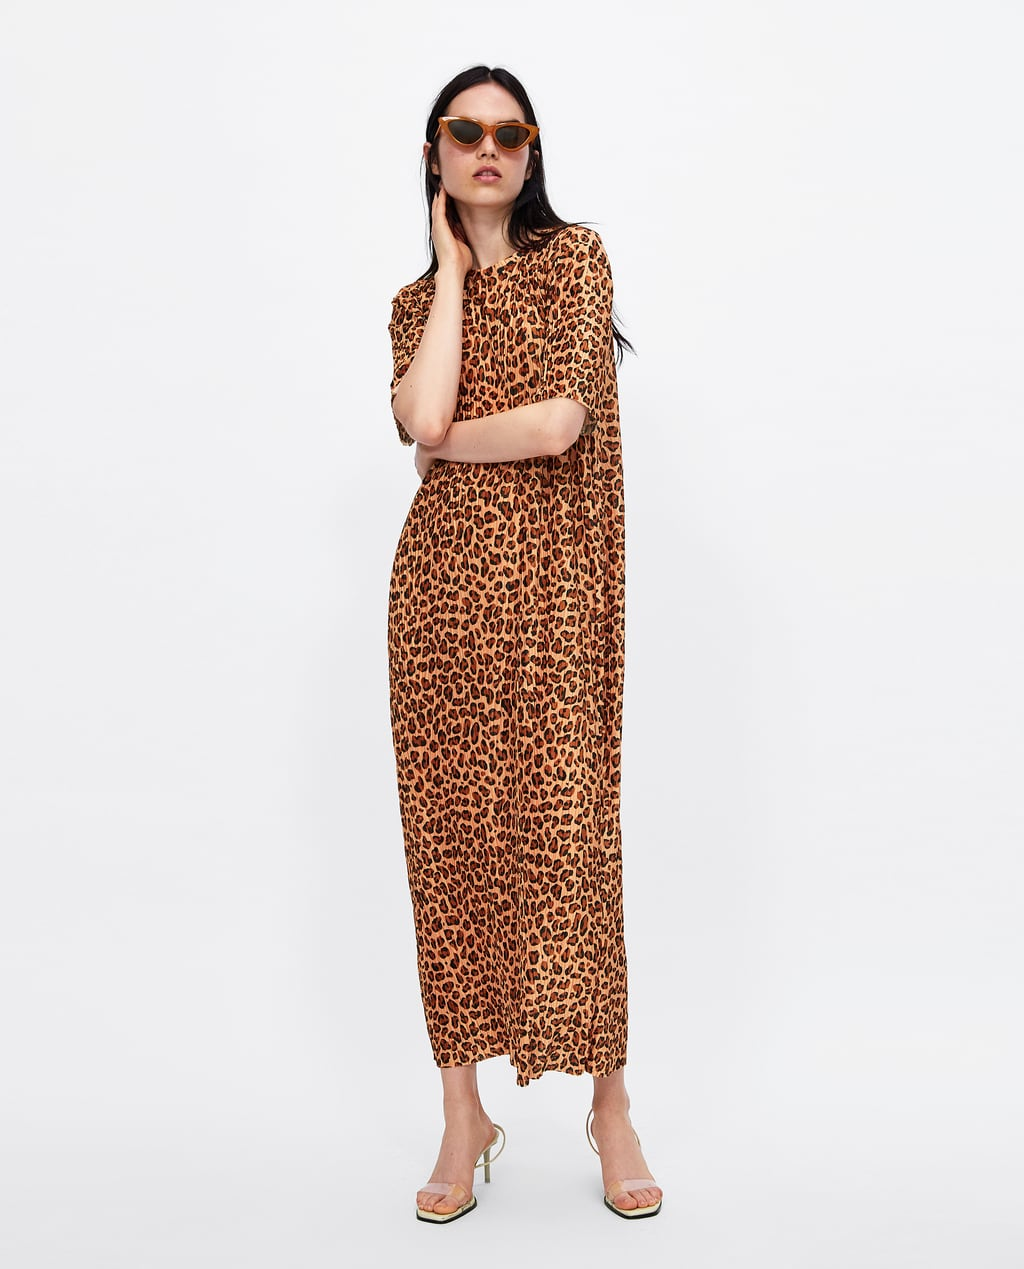 Couture Wear Leopard Print Dresses Women Fit And Flared Dressesmidi